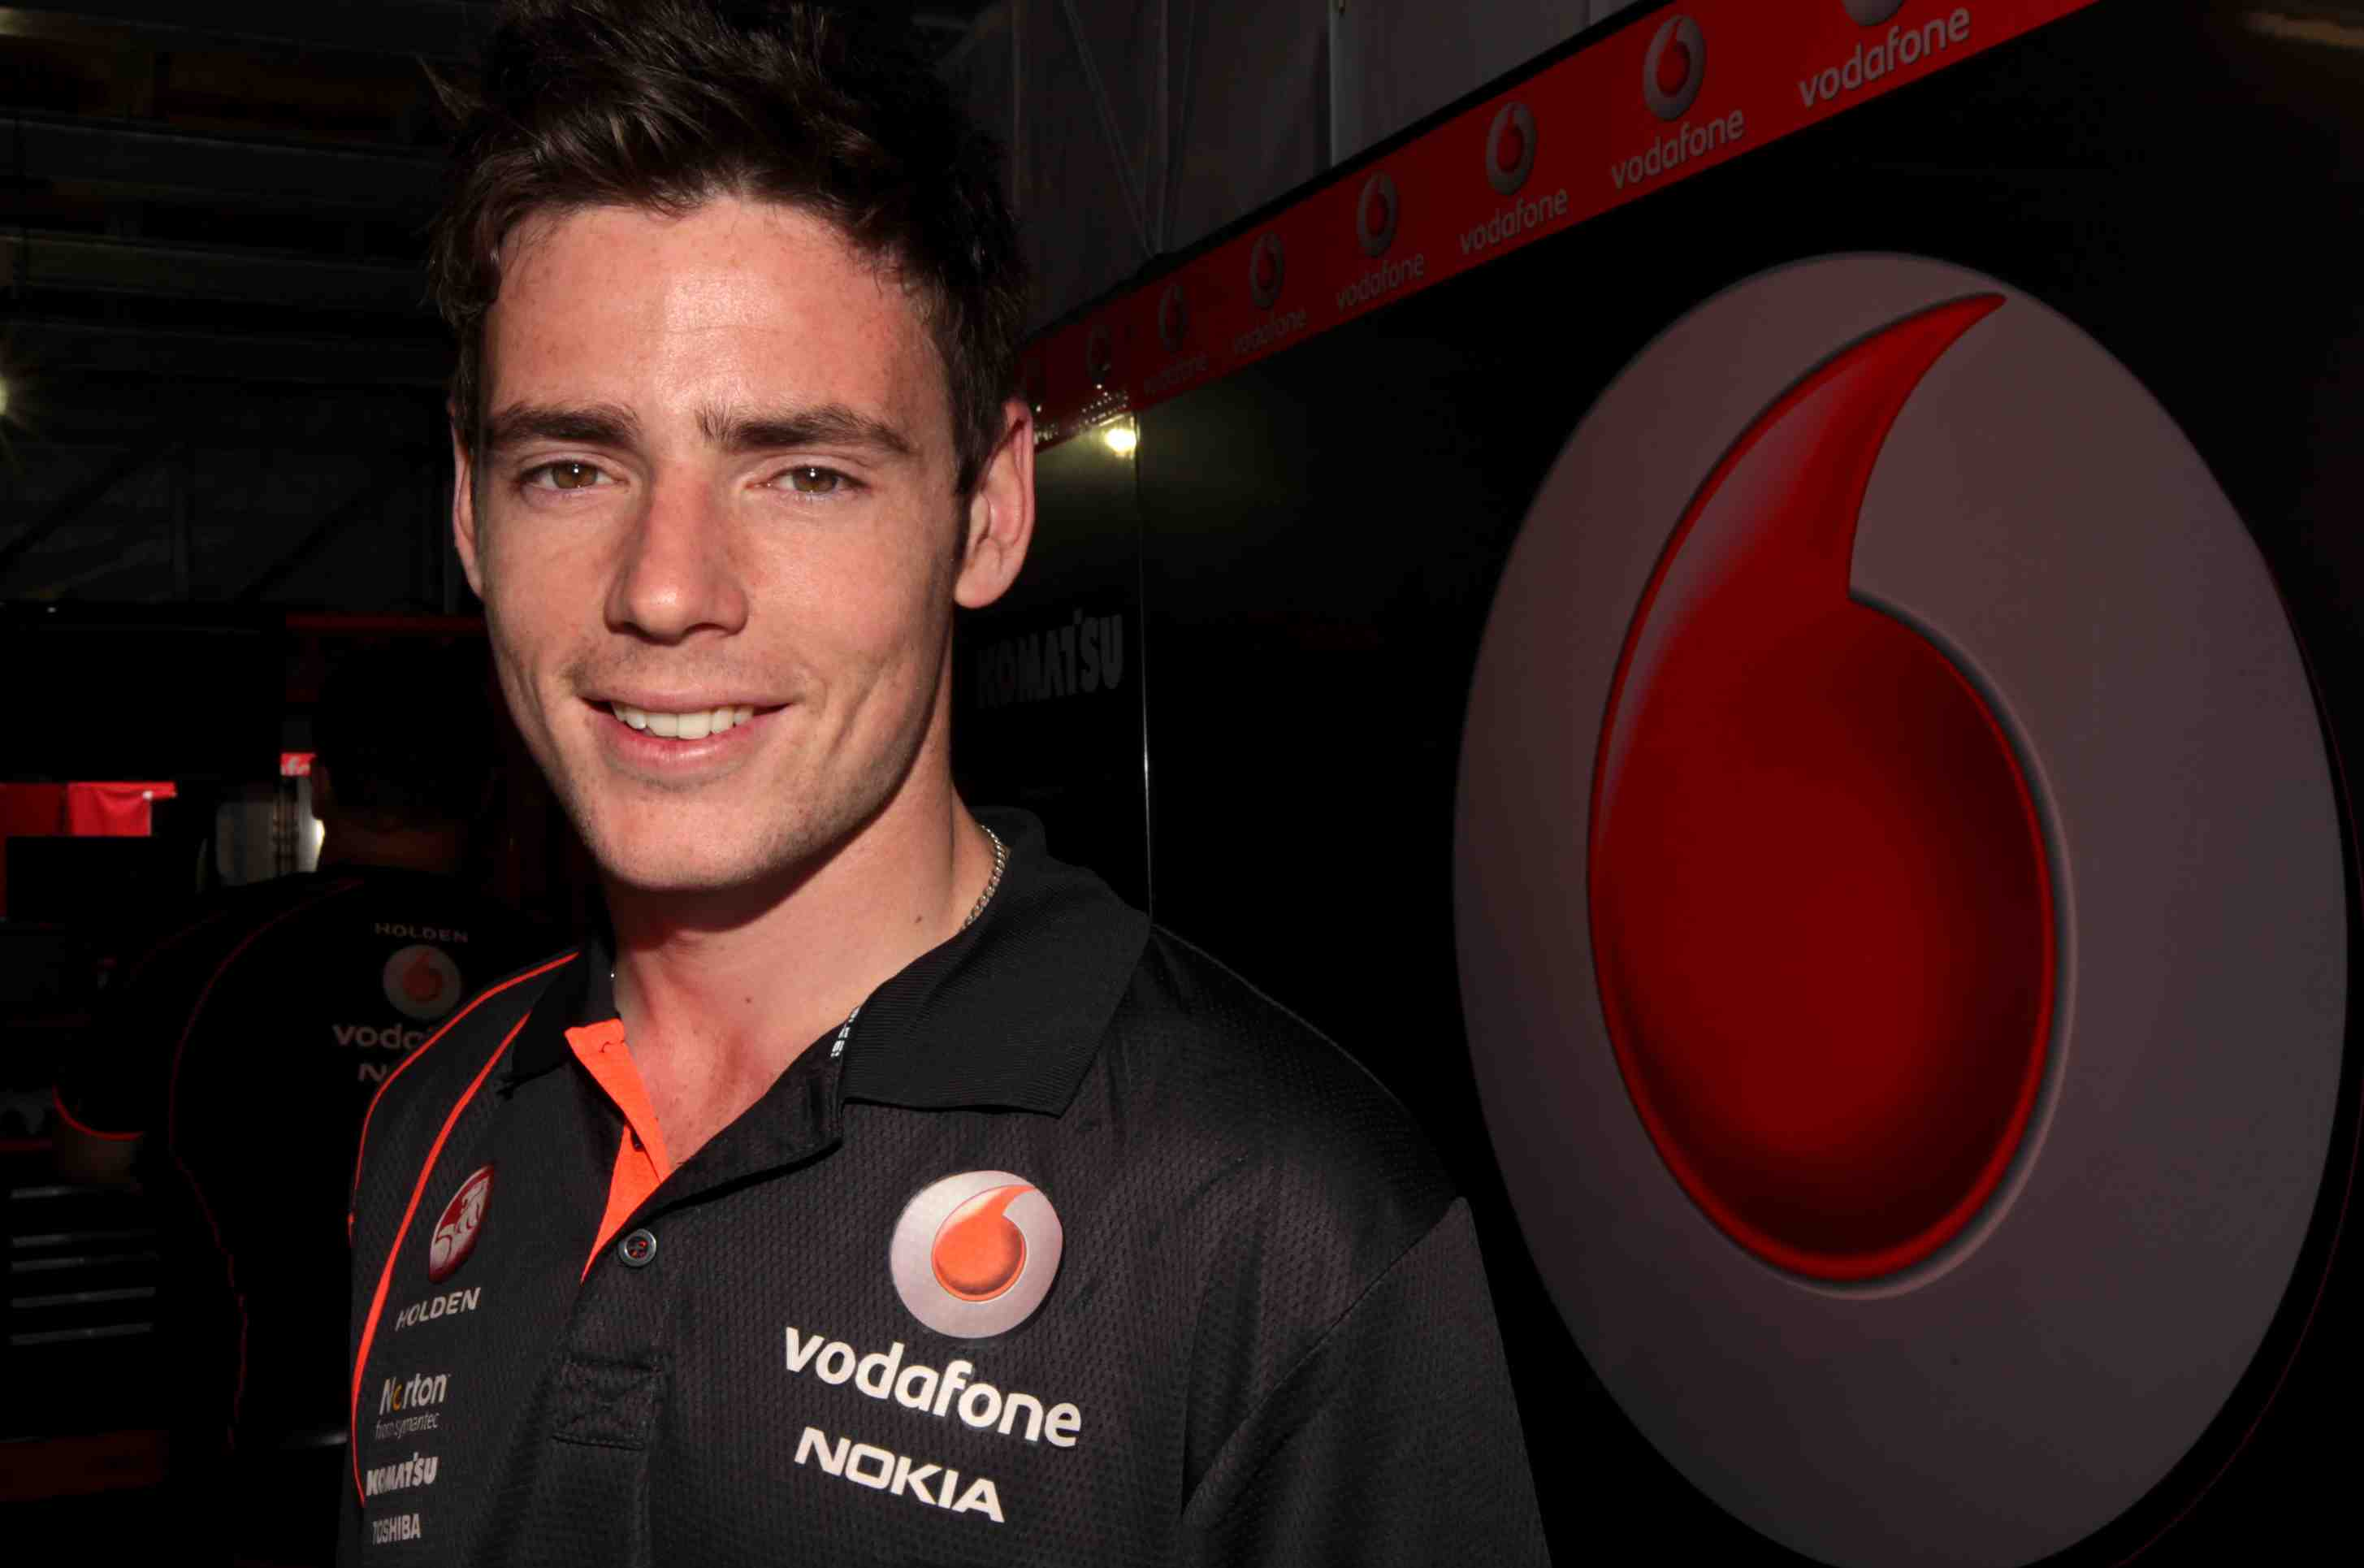 Pye gets up close with TeamVodafone